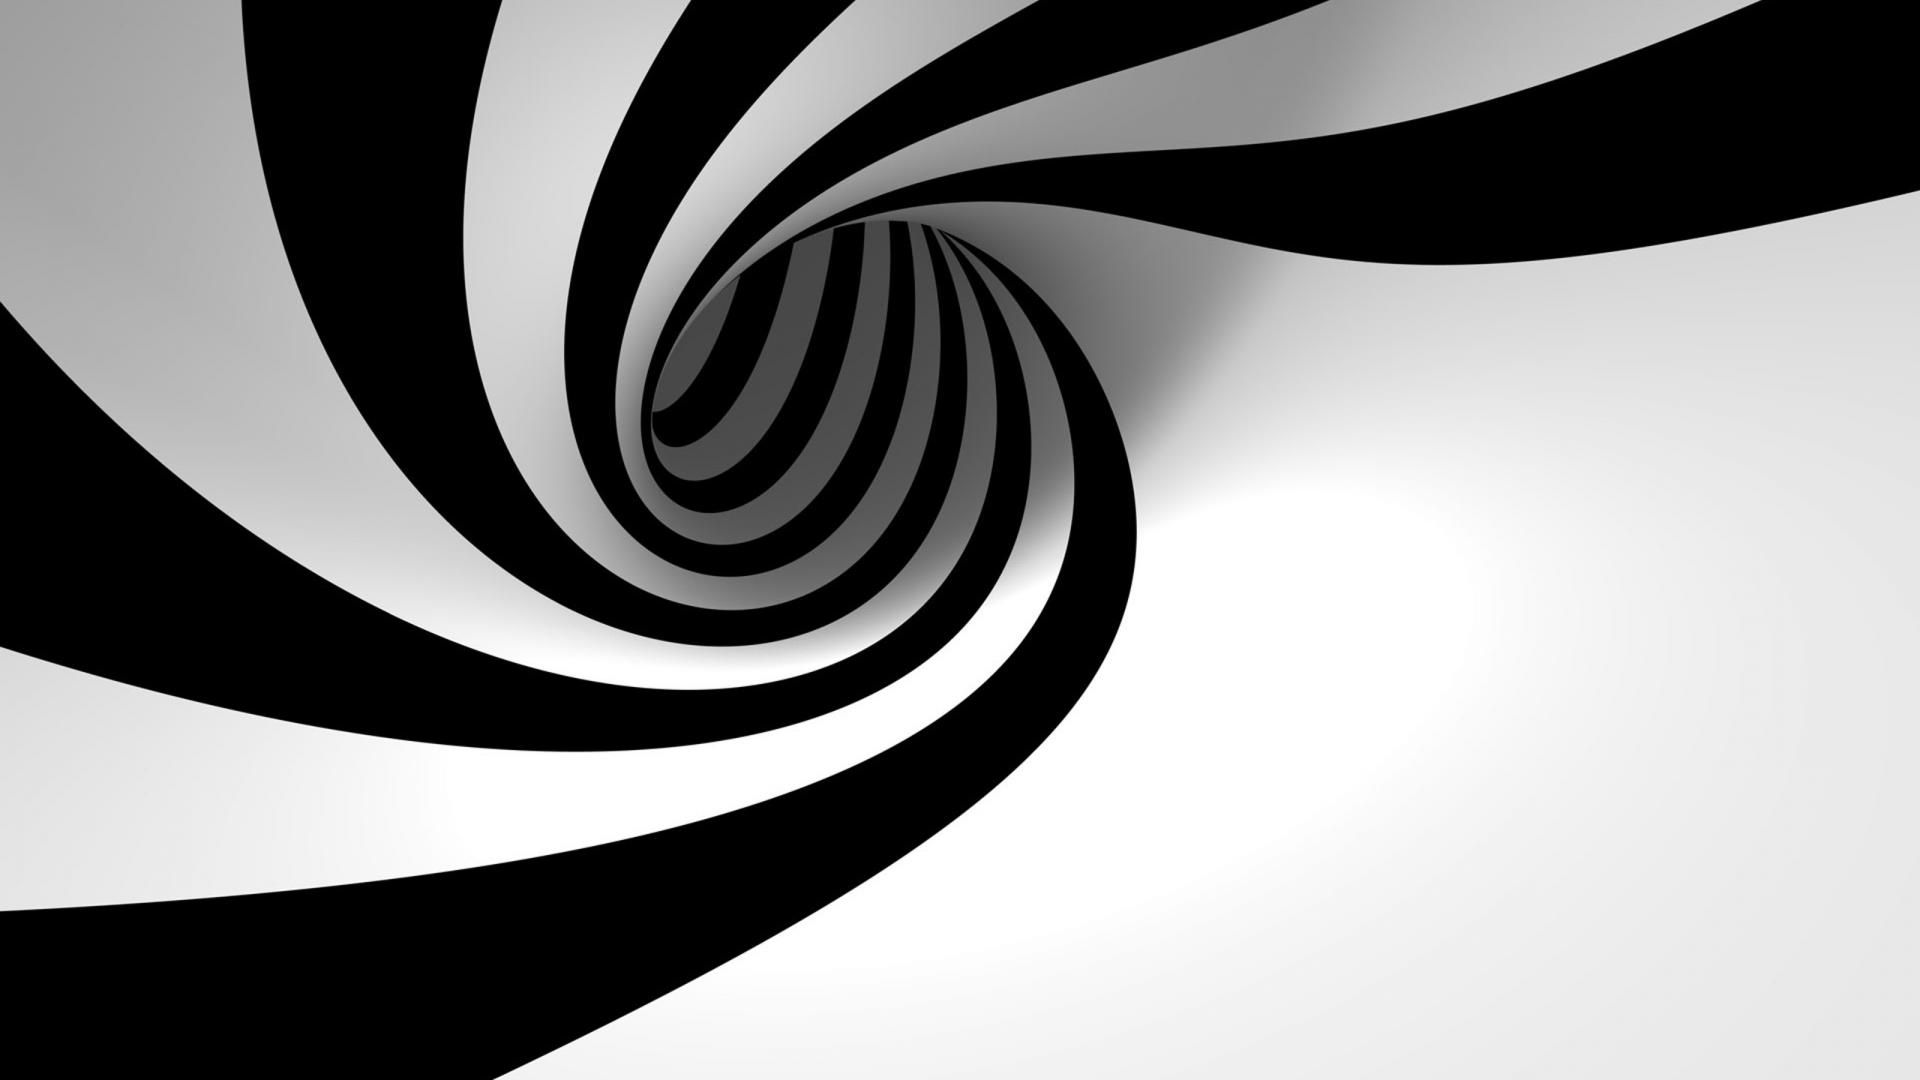 3d Backgrounds Black And White Hd Wallpaper Abstract Wallpaper Black And White Background Black And White Abstract